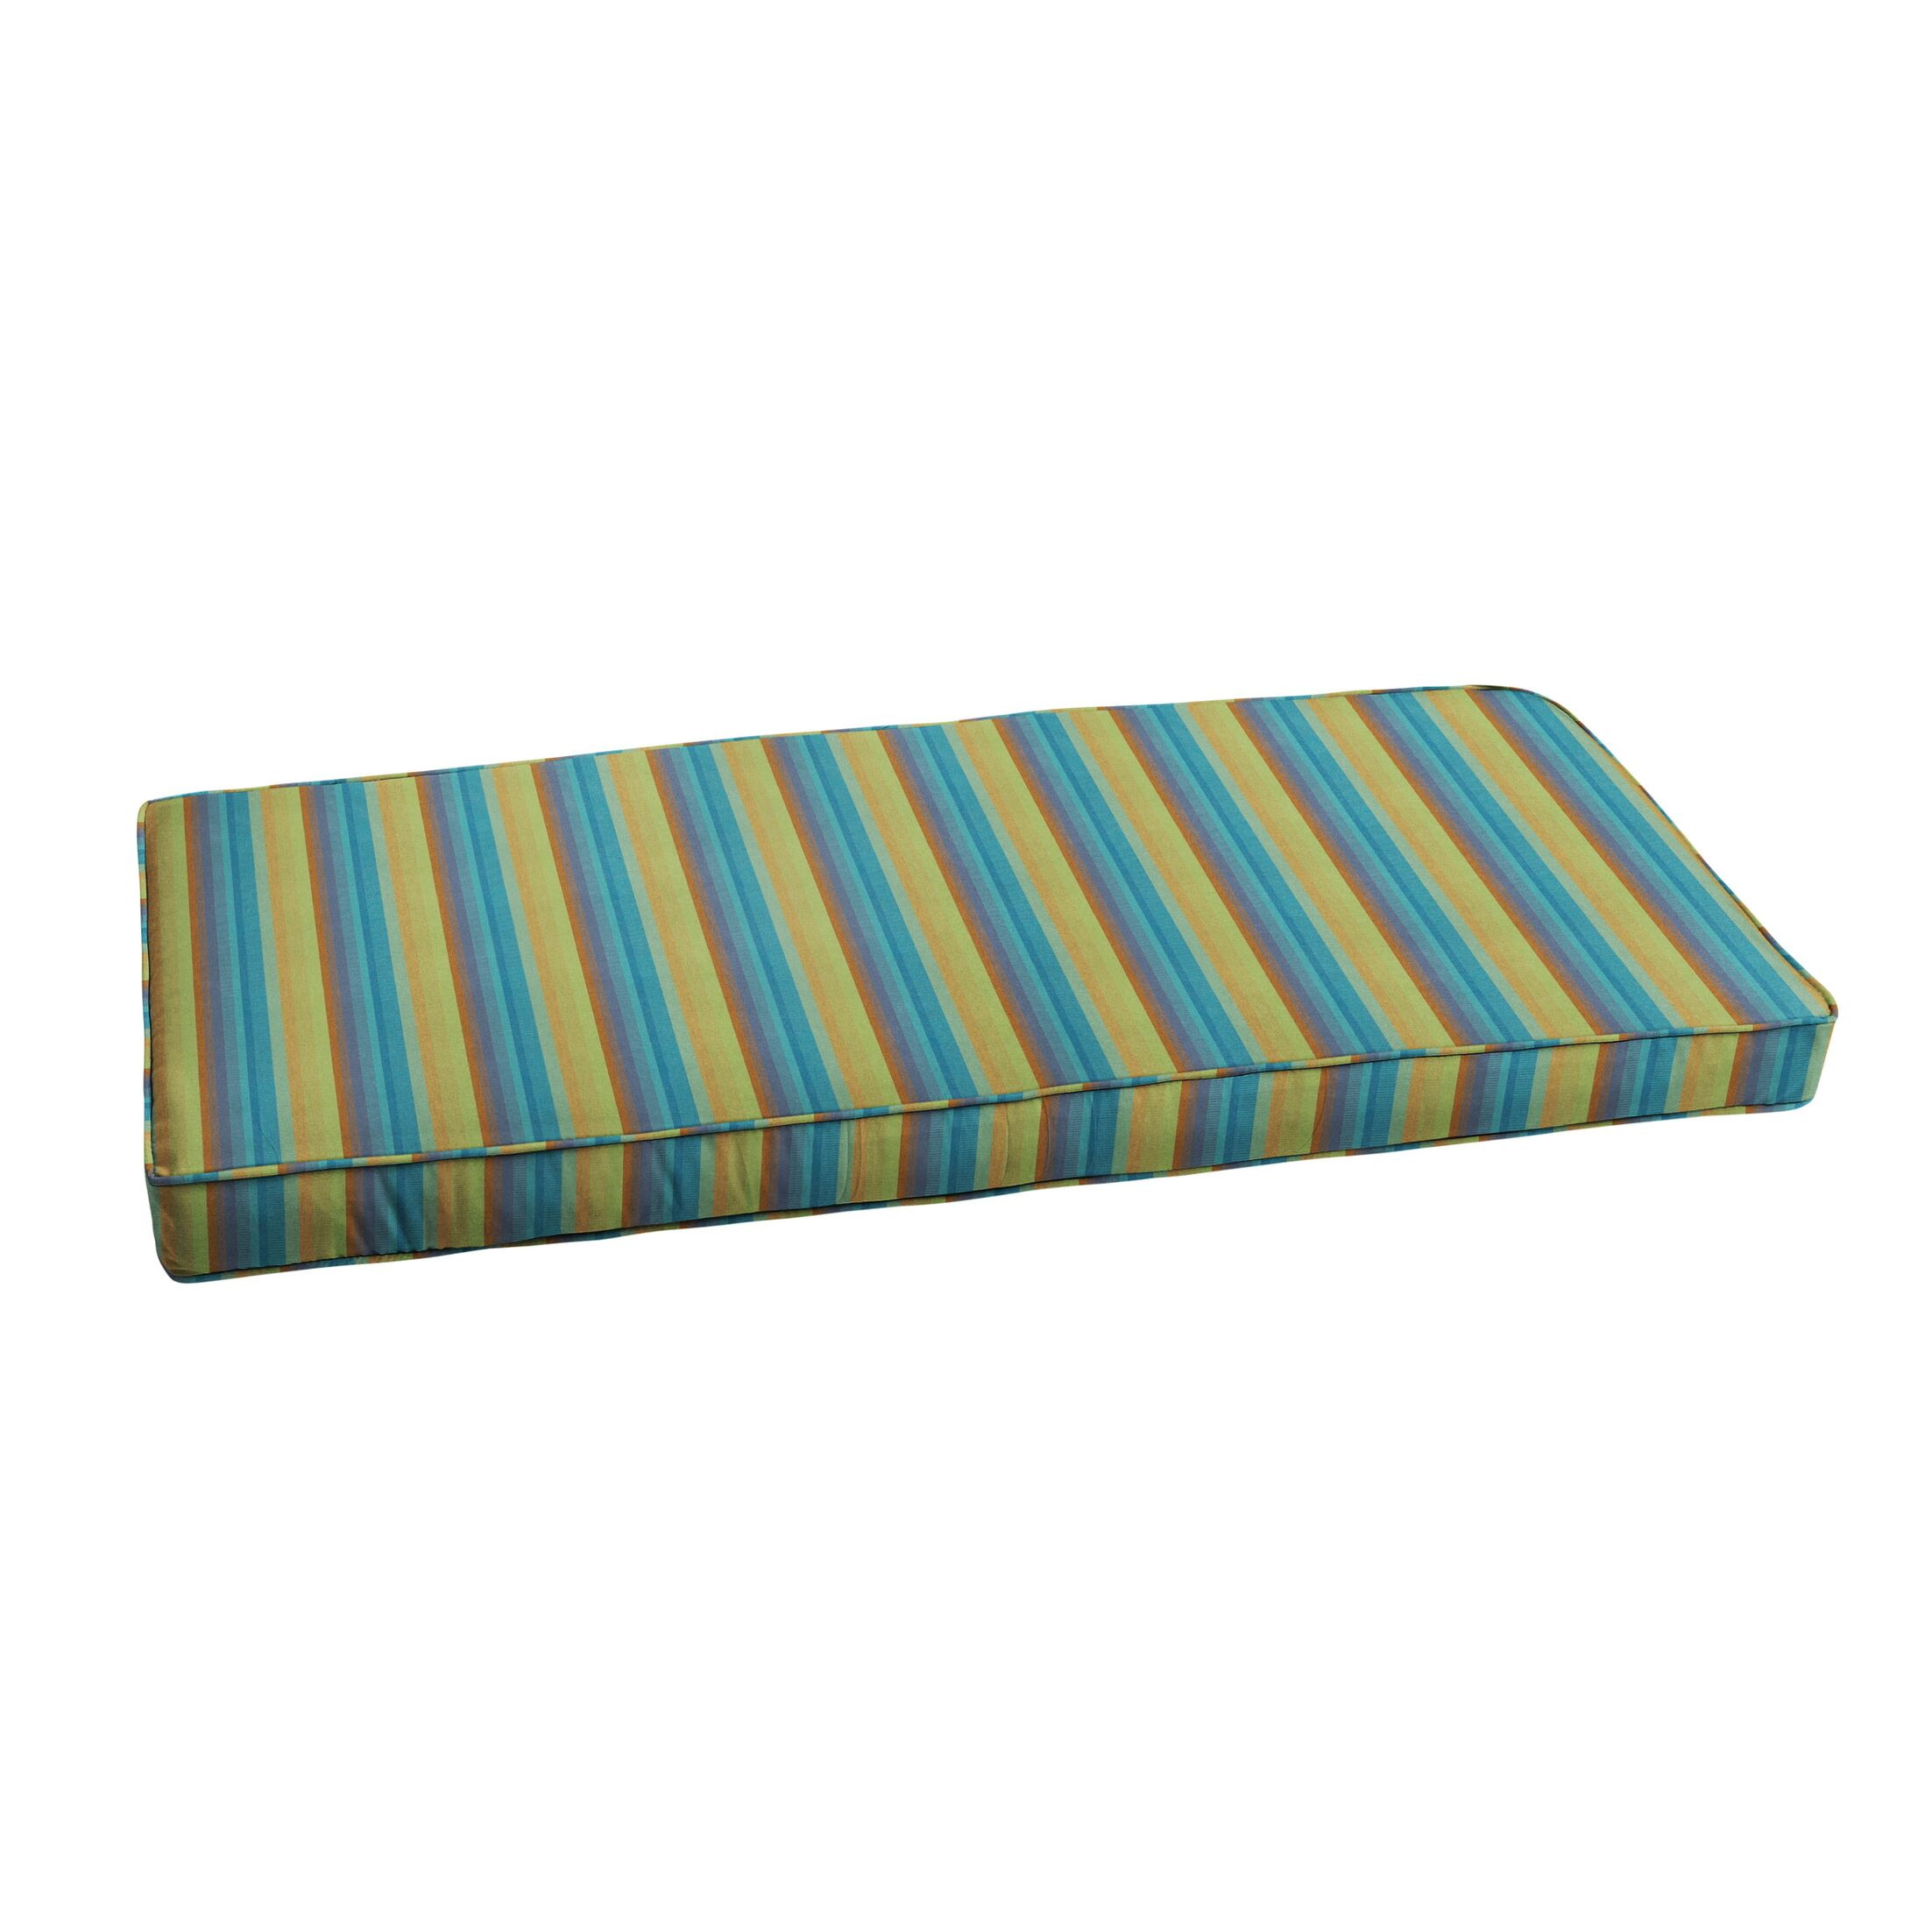 Features: -Cushion cover can be removed for easy cleaning.-The eco-friendly fill is 100% recycled polyester.-Zipper closure with corded edging.-Product Type: Bench Cushion.-Color: Green/Blue.-Location: Outdoor Use Only.-Upholstery Material: Sunbrella ...